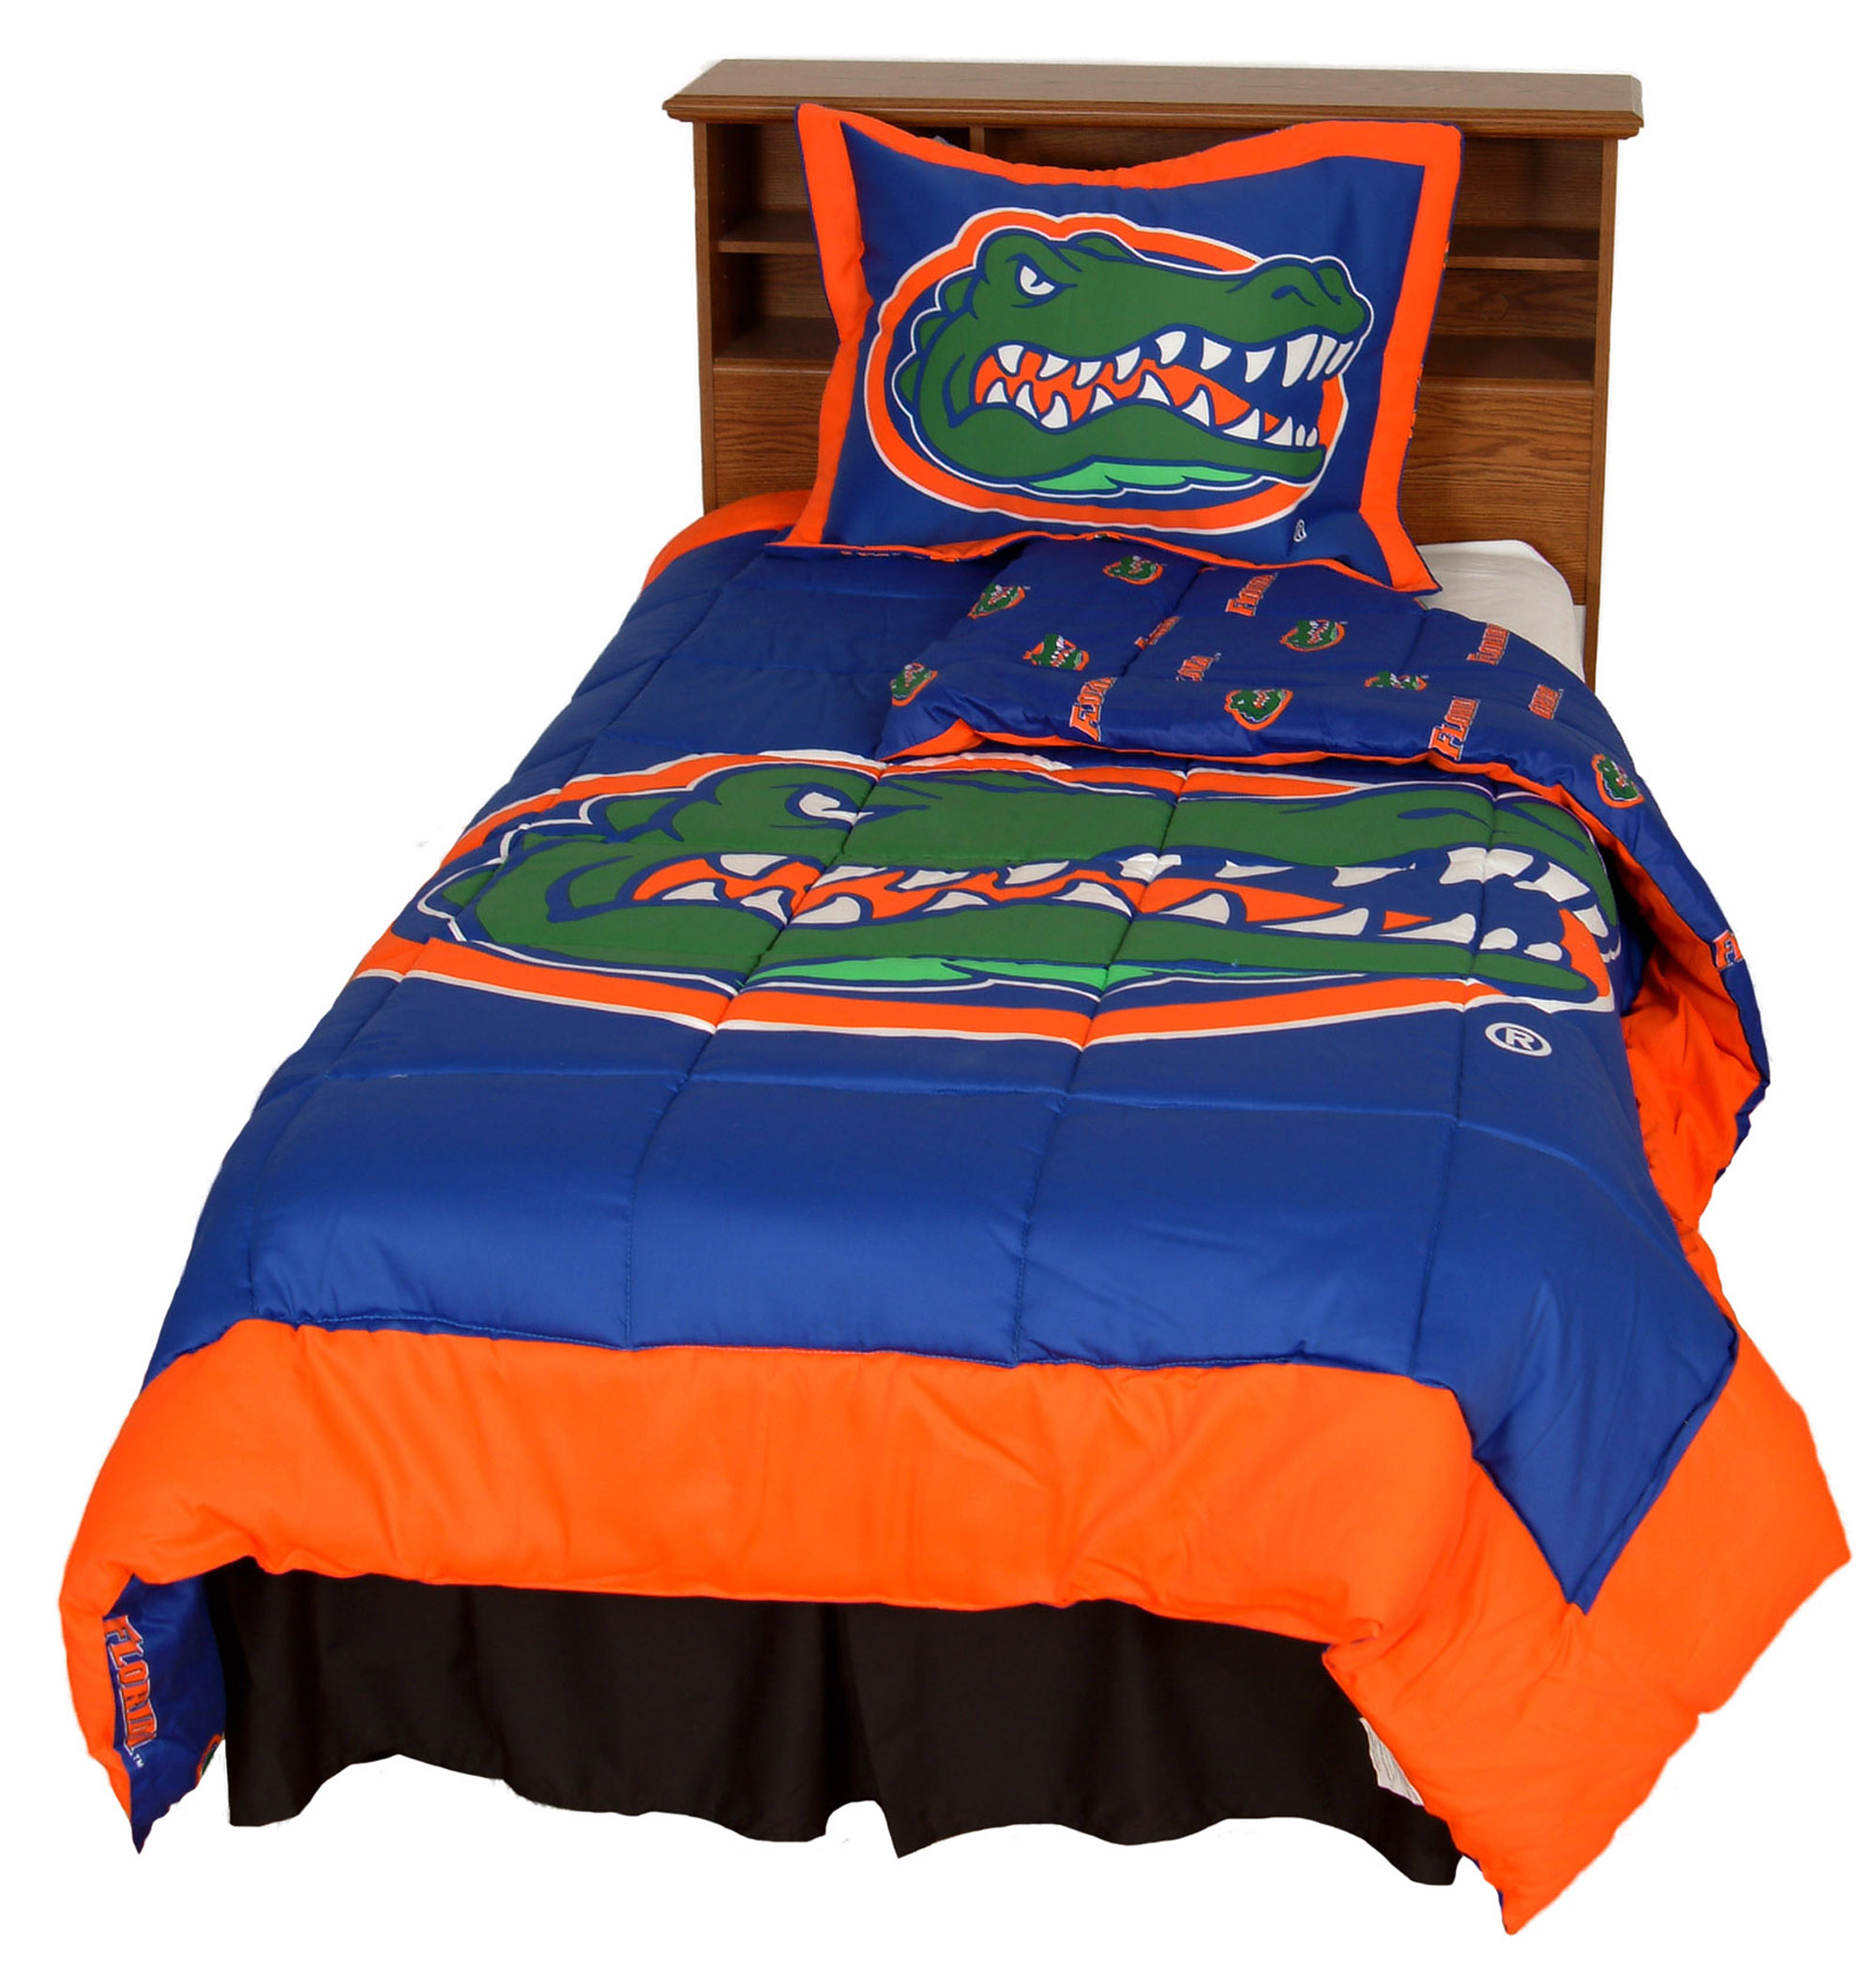 Florida Gators 2 Pc Comforter Set, 1 Comforter, 1 Sham, Twin